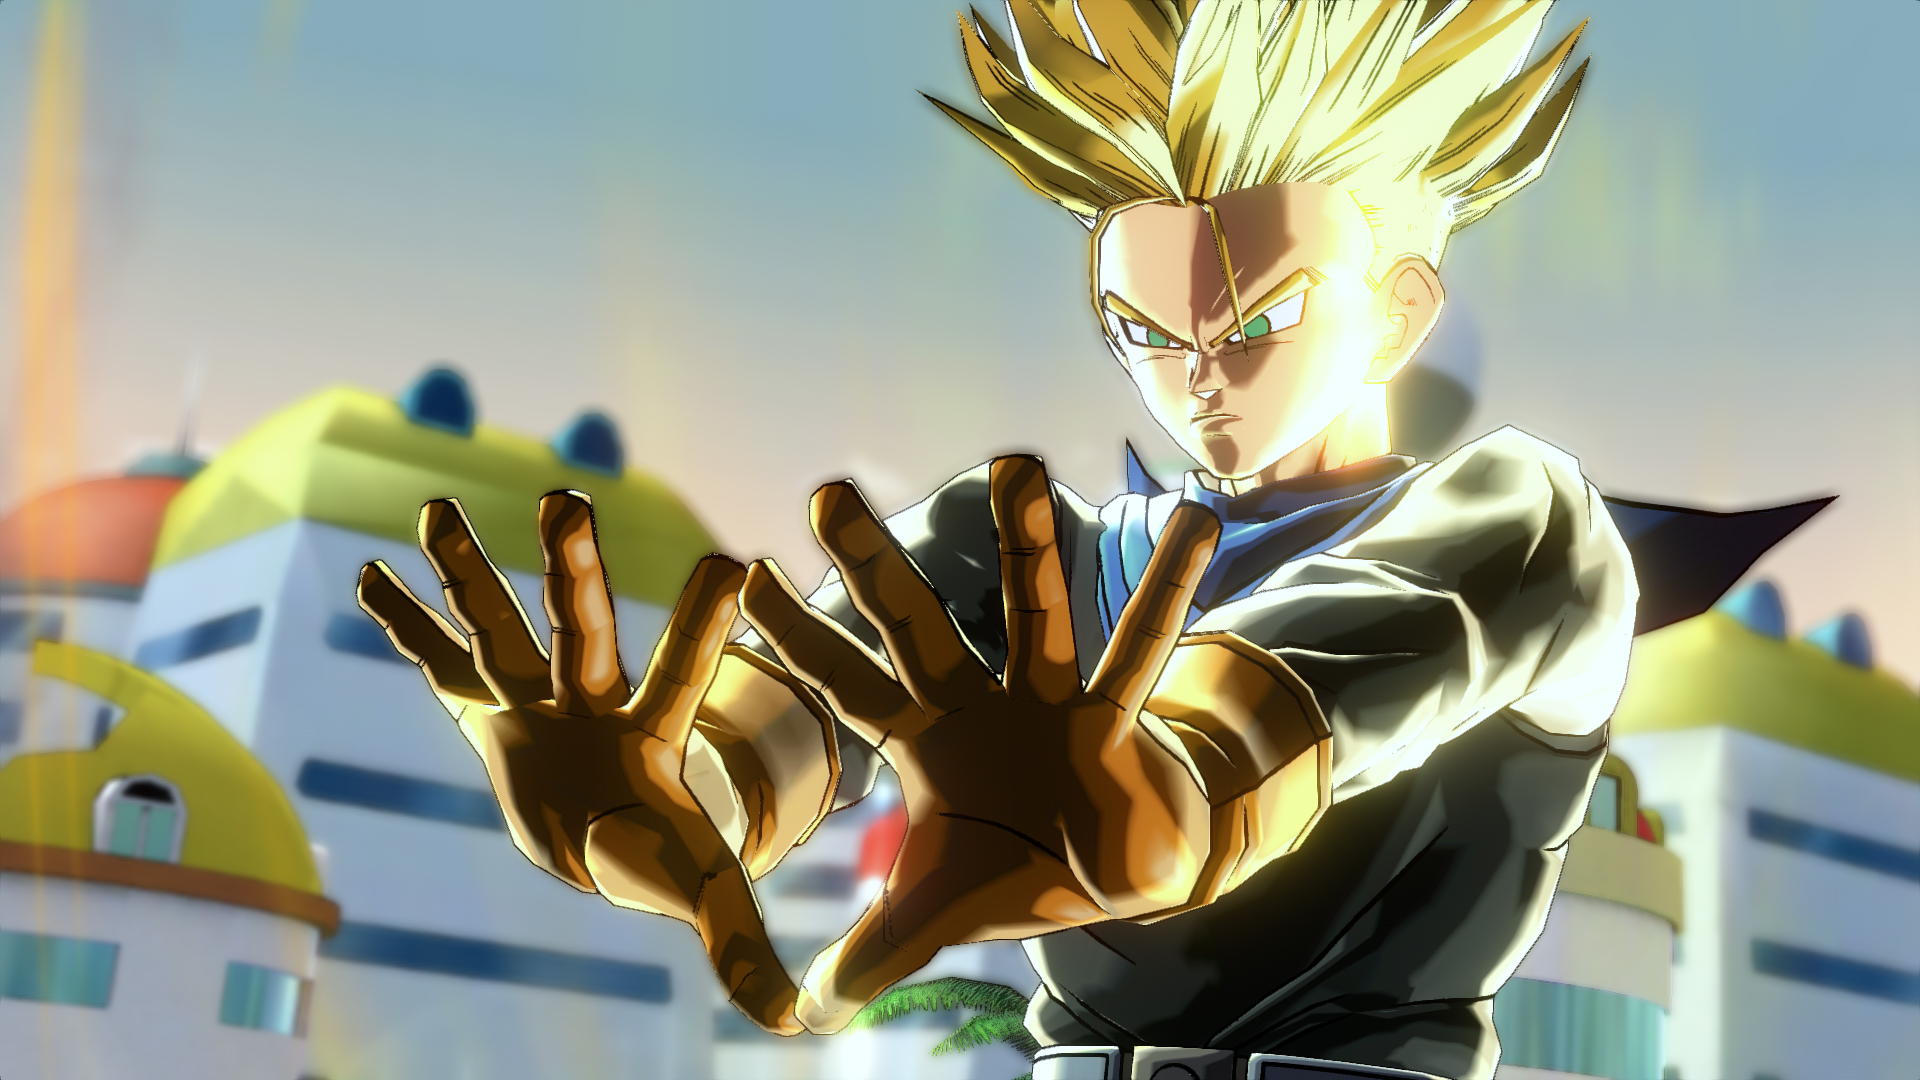 Expand Your Xenoverse Experience With Some DLC